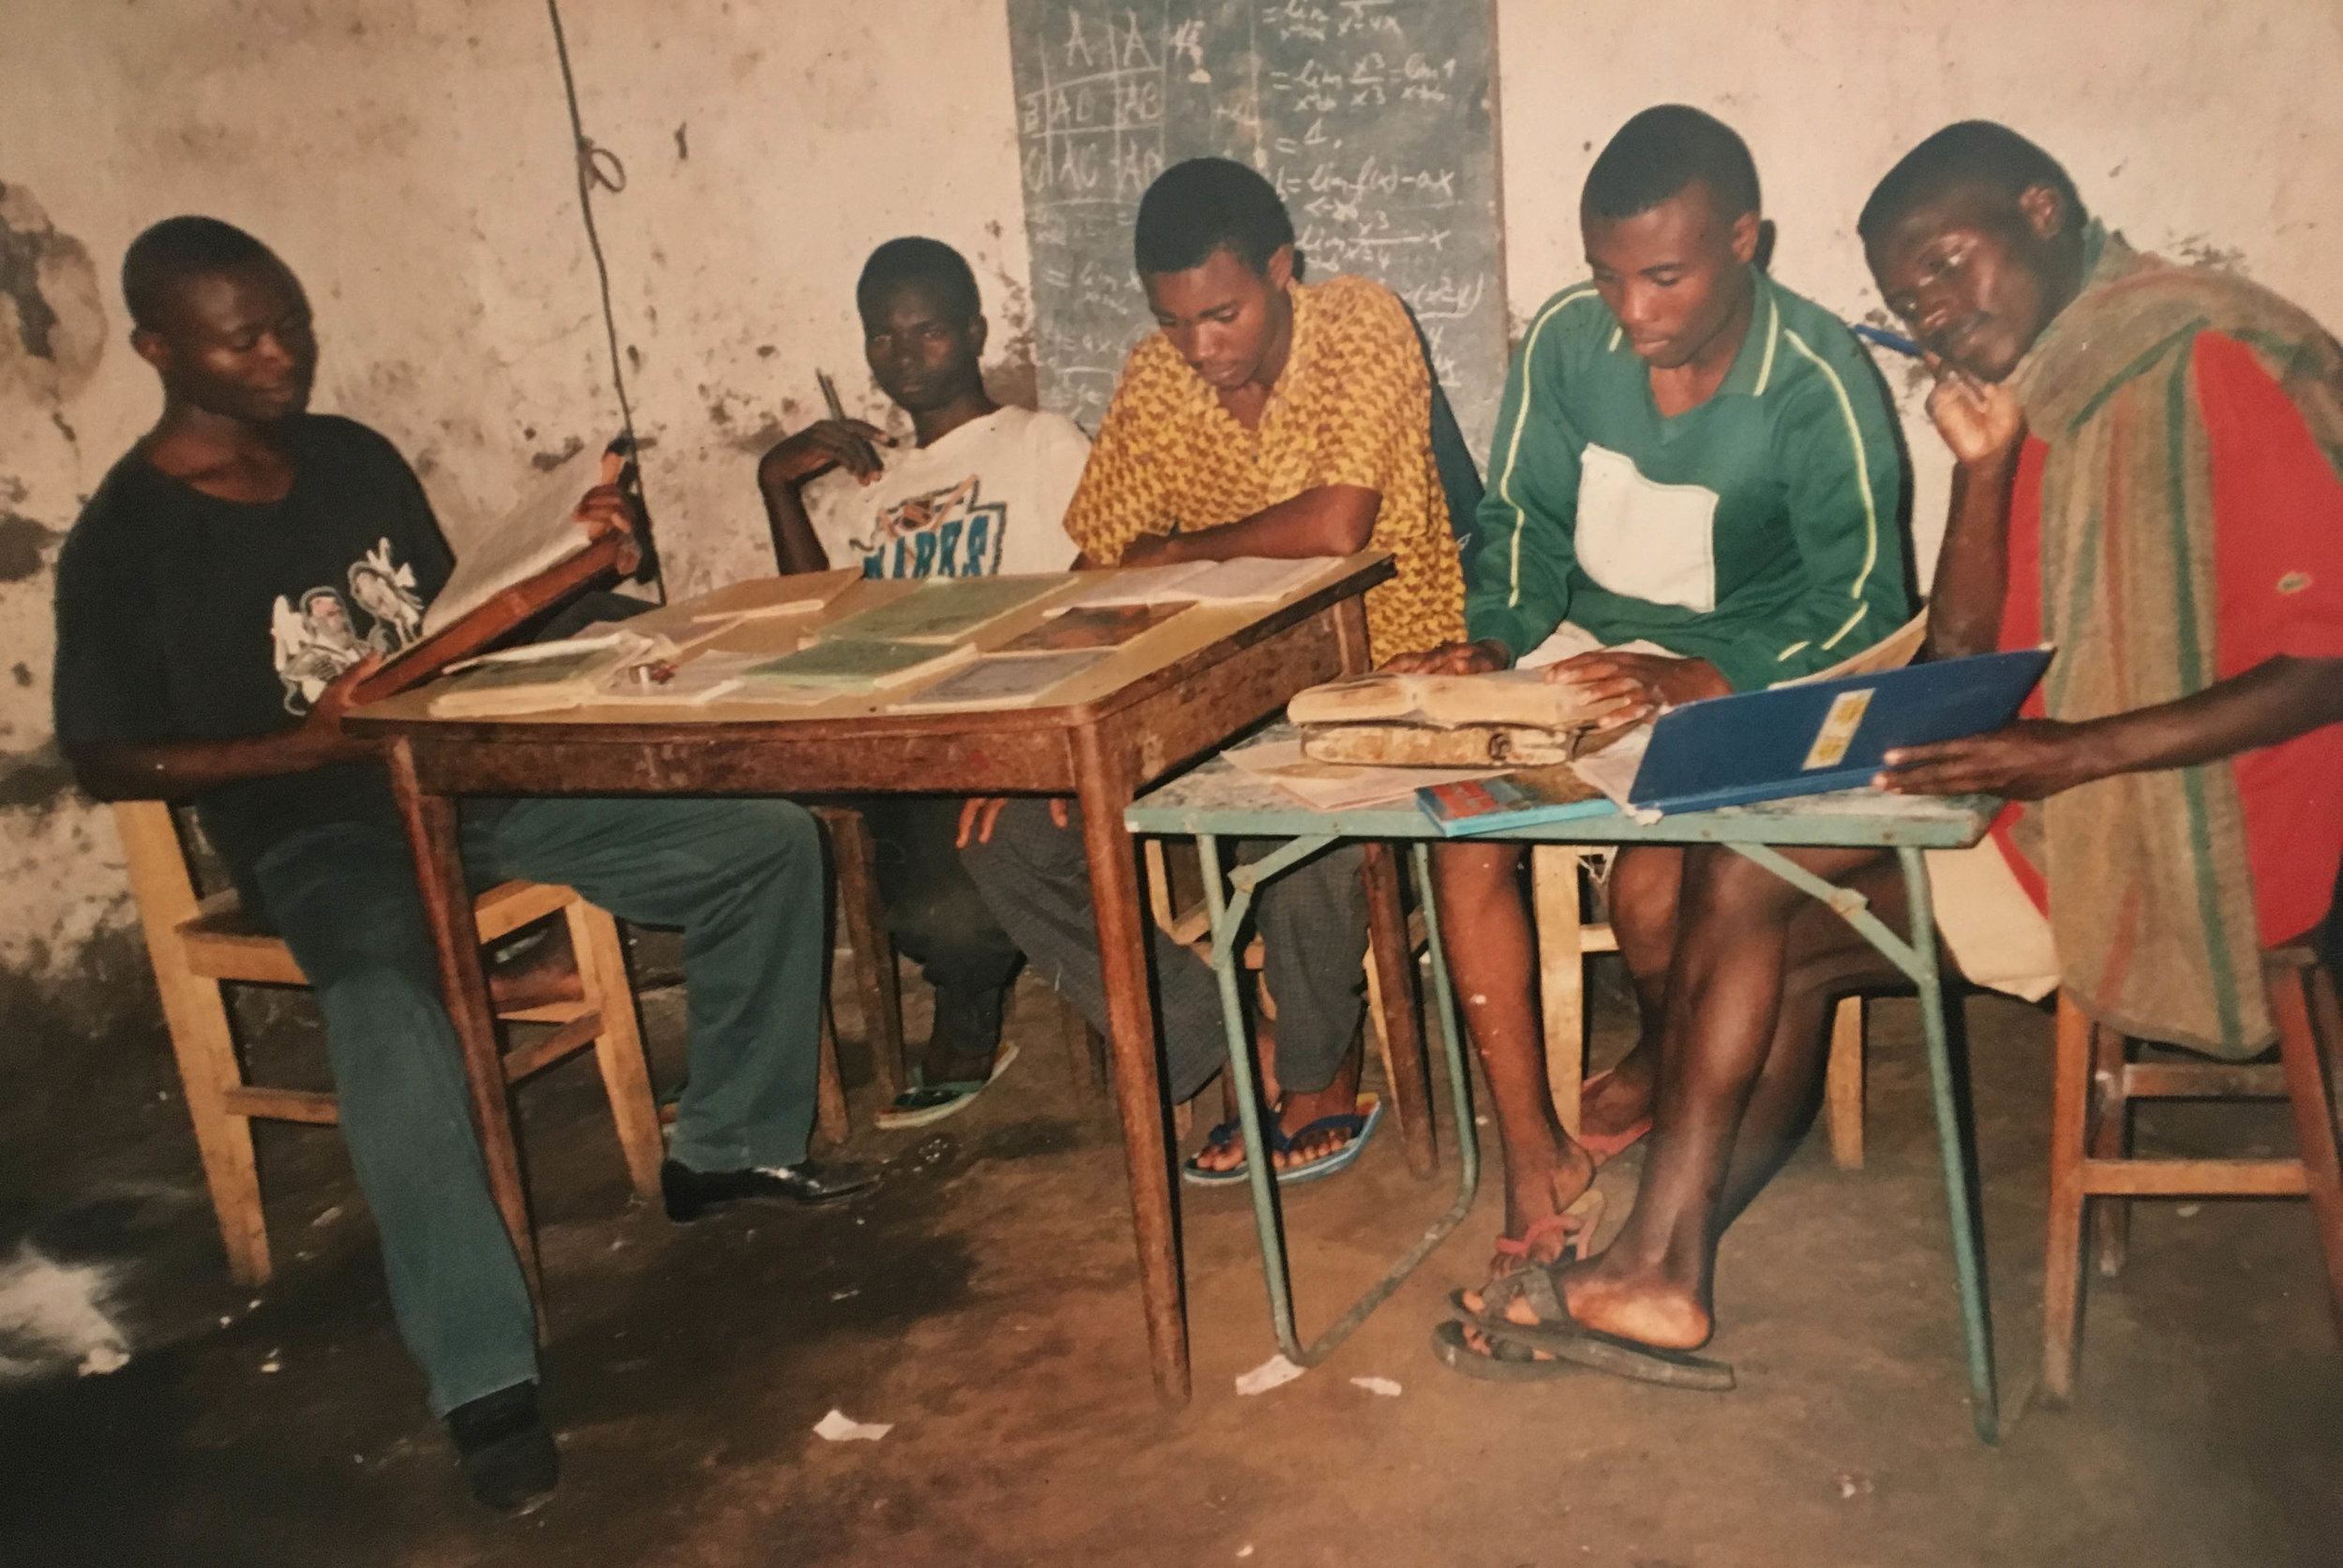 Bolingo studying with friends in the DRC.